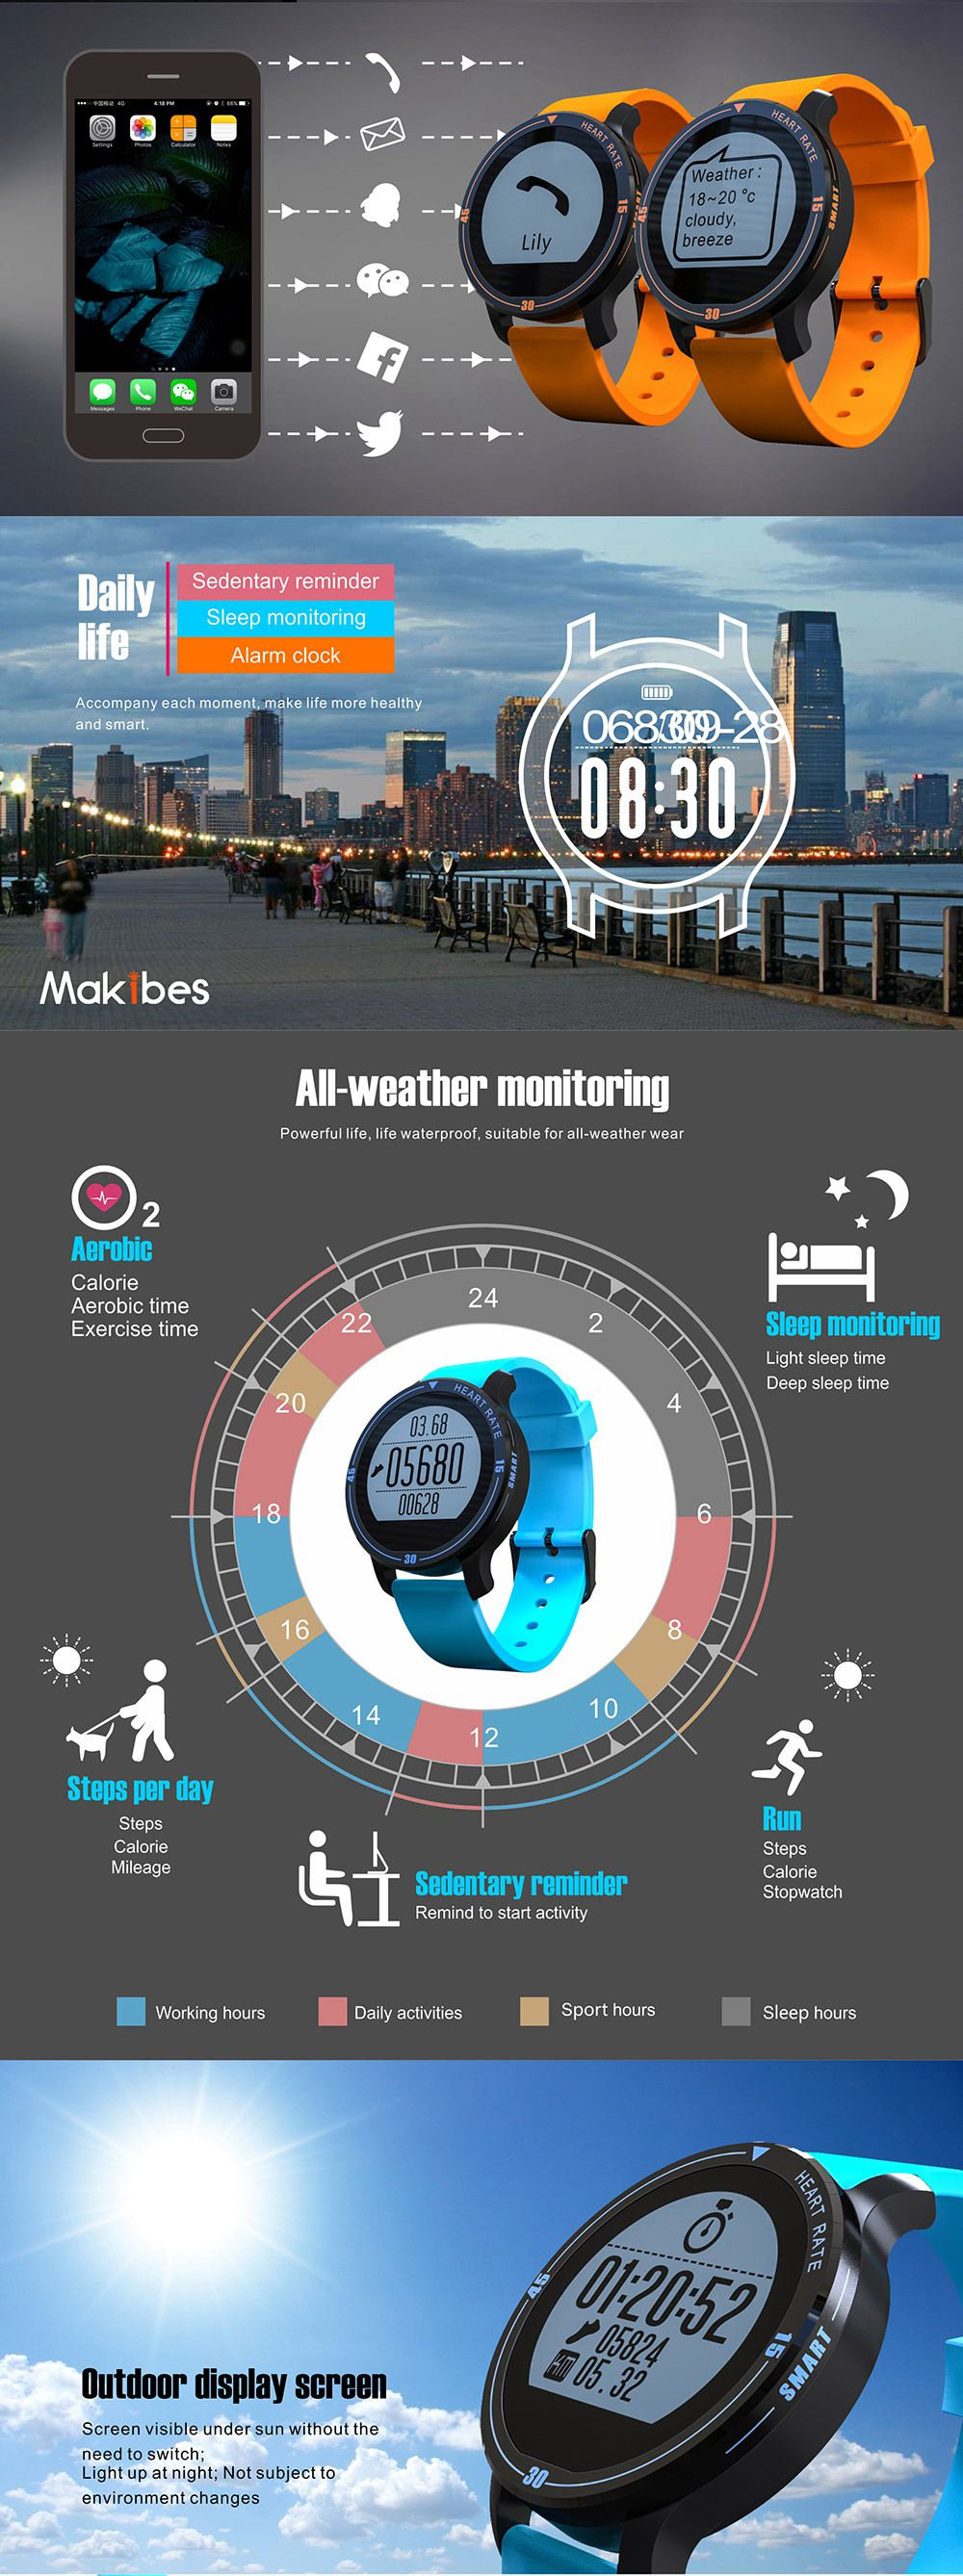 MAKIBES AEROBIC A1 SMART SPORTS WATCH BLUETOOTH DYNAMIC HEART RATE MONITOR SMARTWATCH S200 231407 19